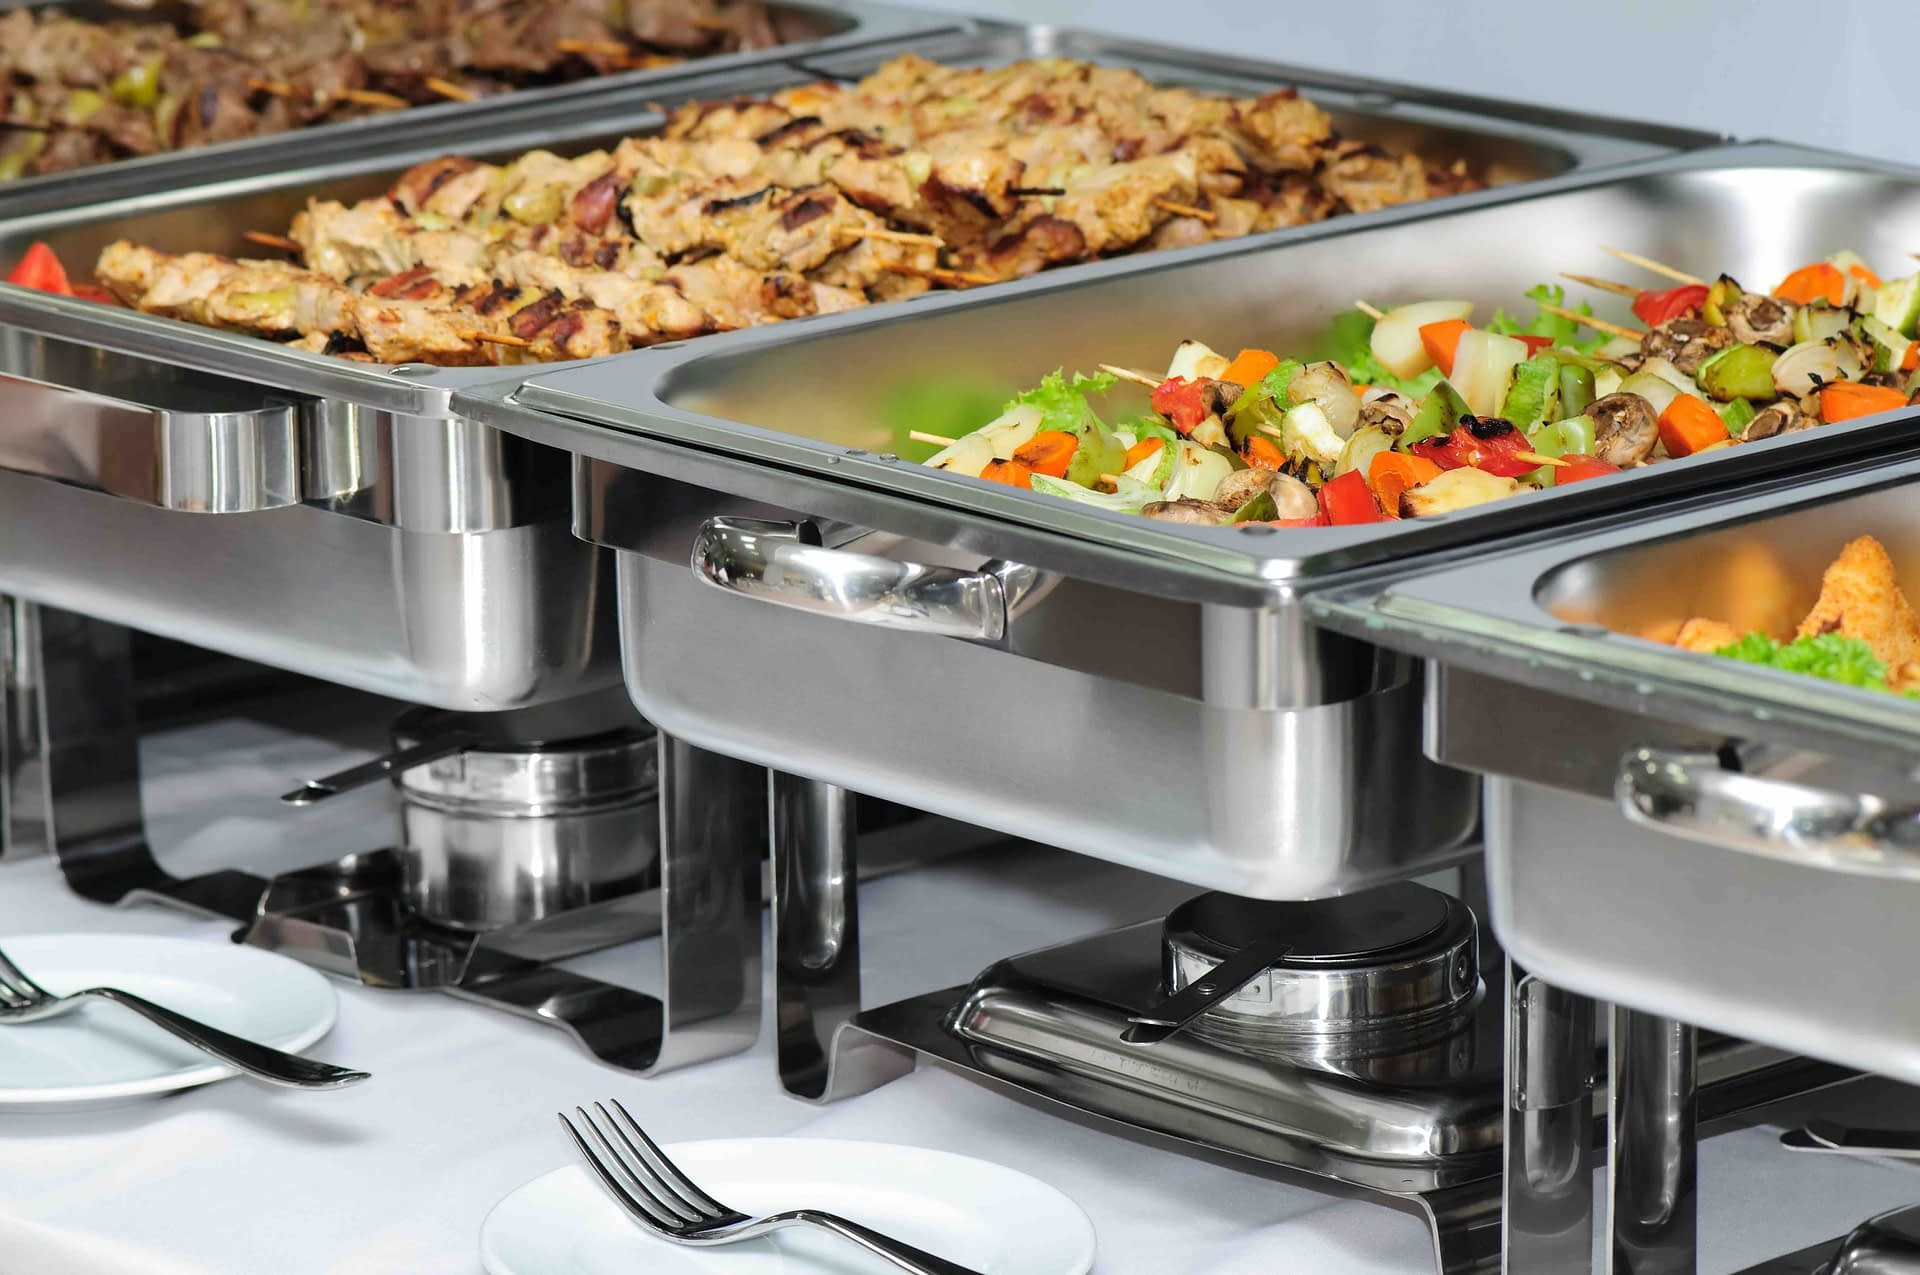 4659177 - banquet table with chafing dish heaters